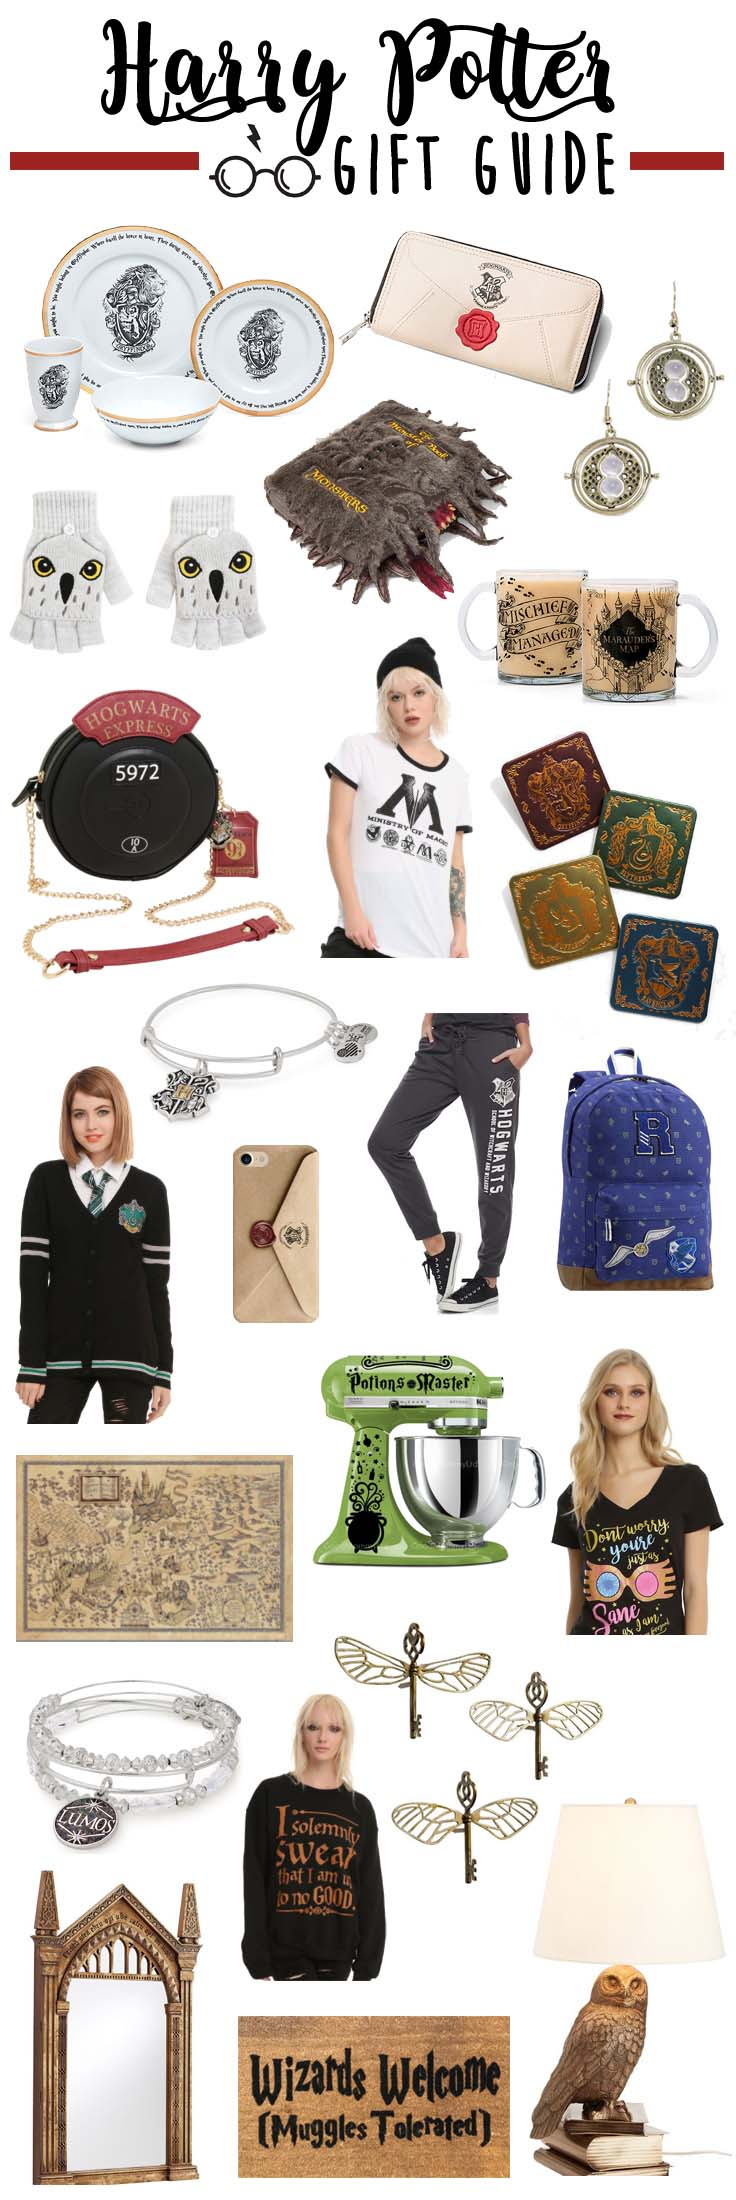 Gift ideas for Harry Potter fans.